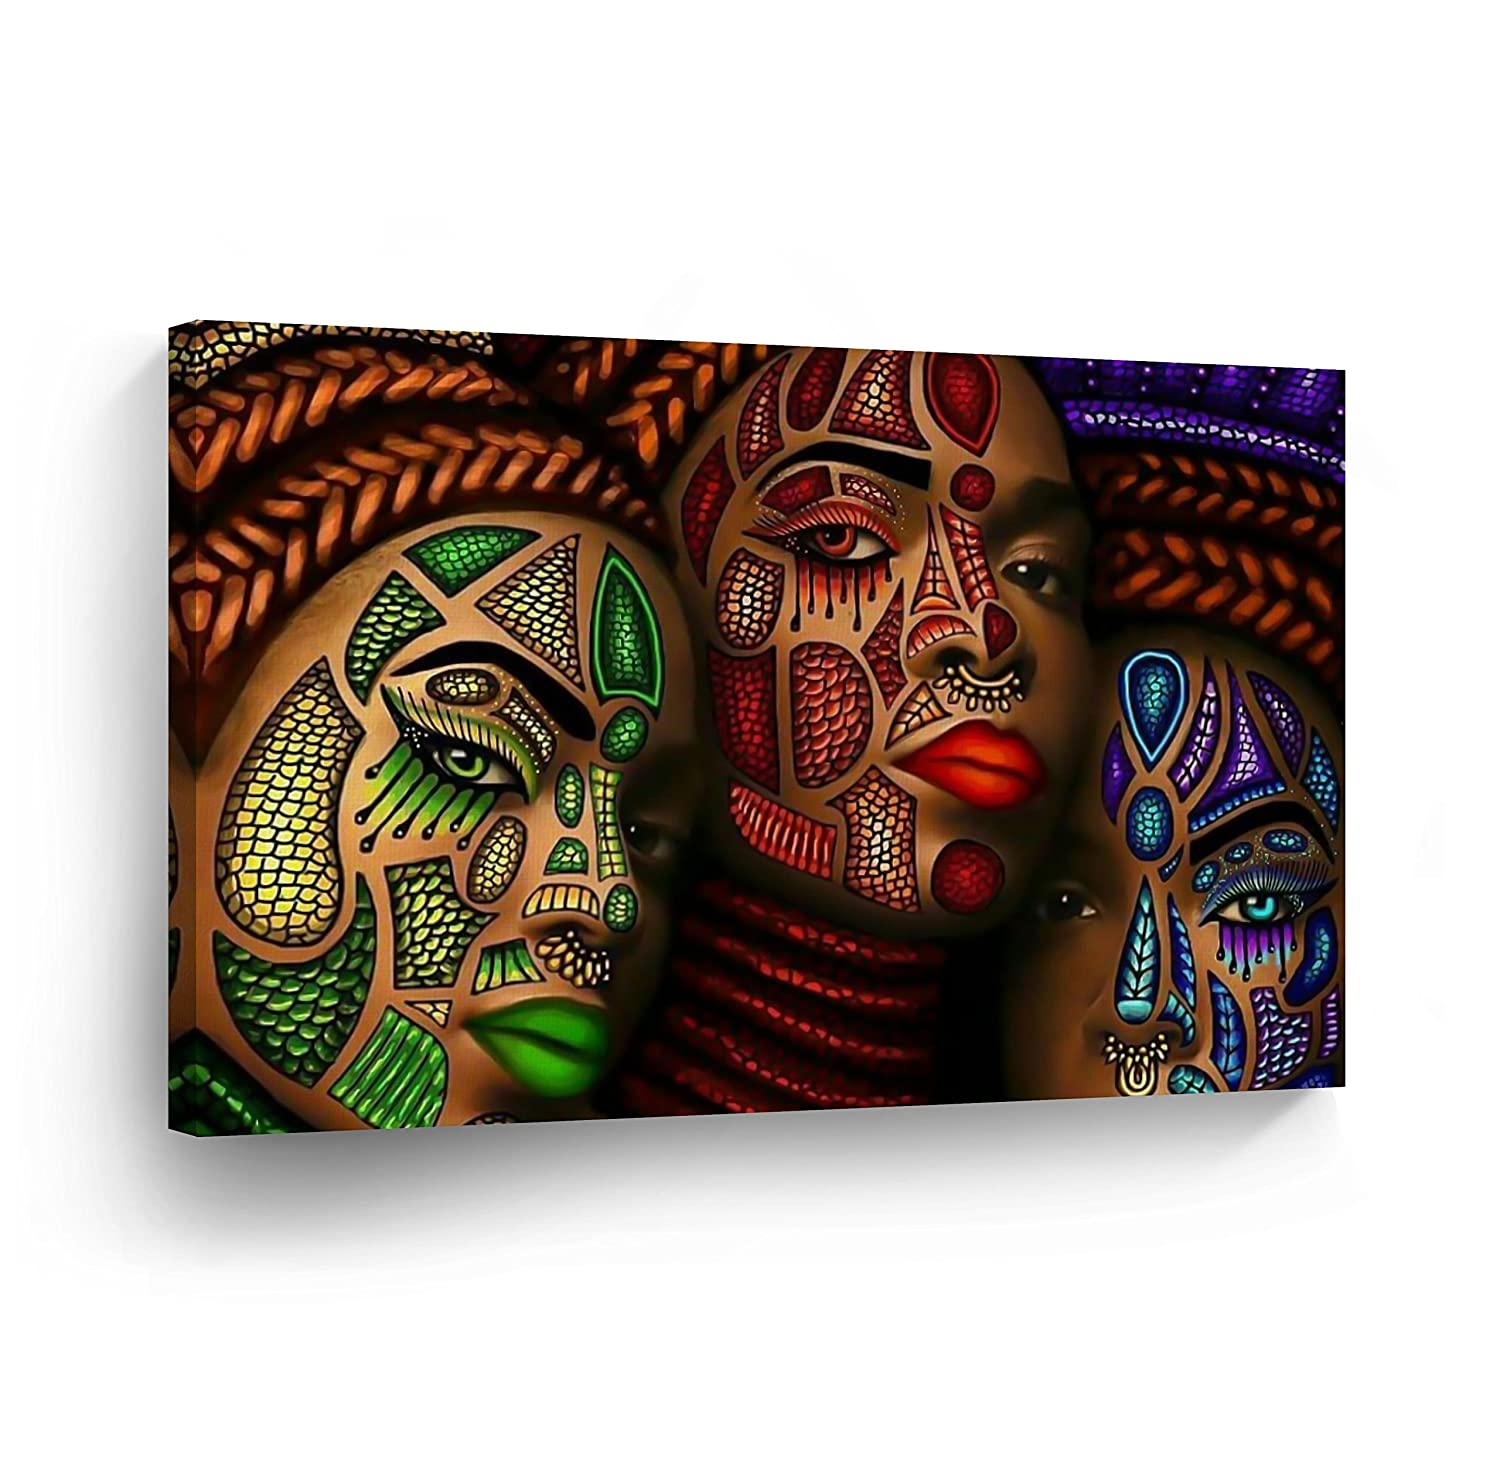 SmileArtDesign Three African Women Stylish Make Up Modern Art Painting Canvas Print Decorive Wall Art African Art Home Decor Stretched Ready to Hang -%100 Handmade in The USA - 8x12